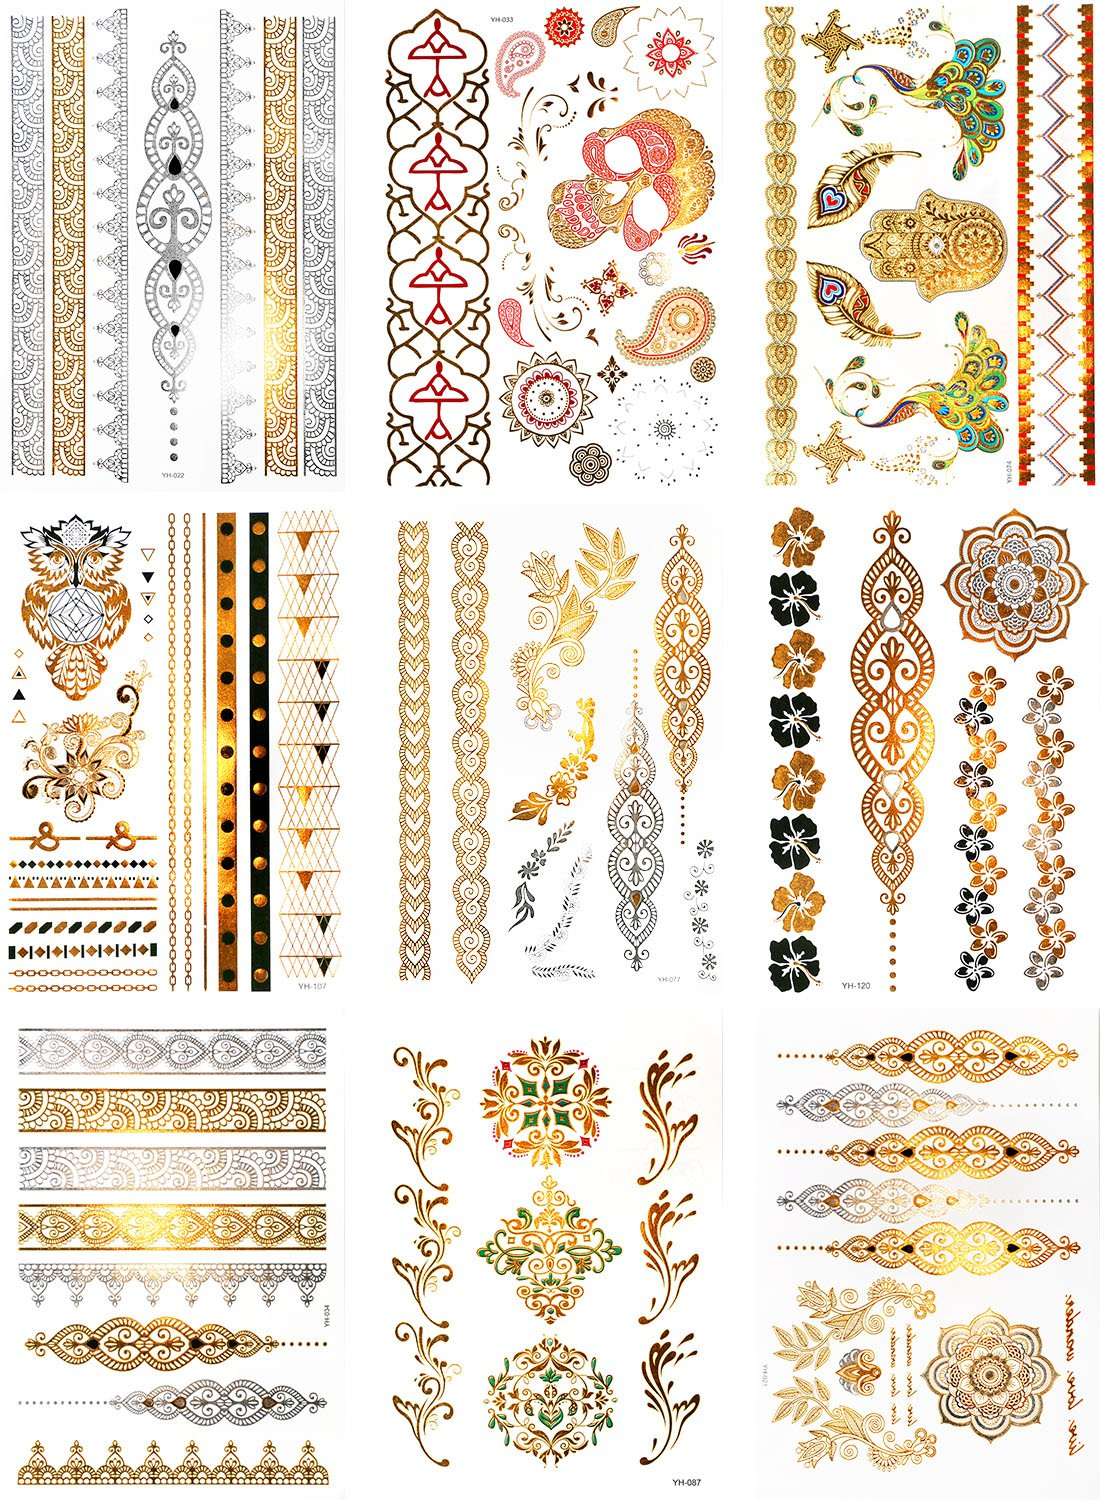 Scotamalone Metallic Henna Temporary Tattoos, 9 Sheets, Waterproof Temporary Henna Tattoos Stickers in Shimmer Designs (Gold, Silver, Black, Green) TT-LS0037